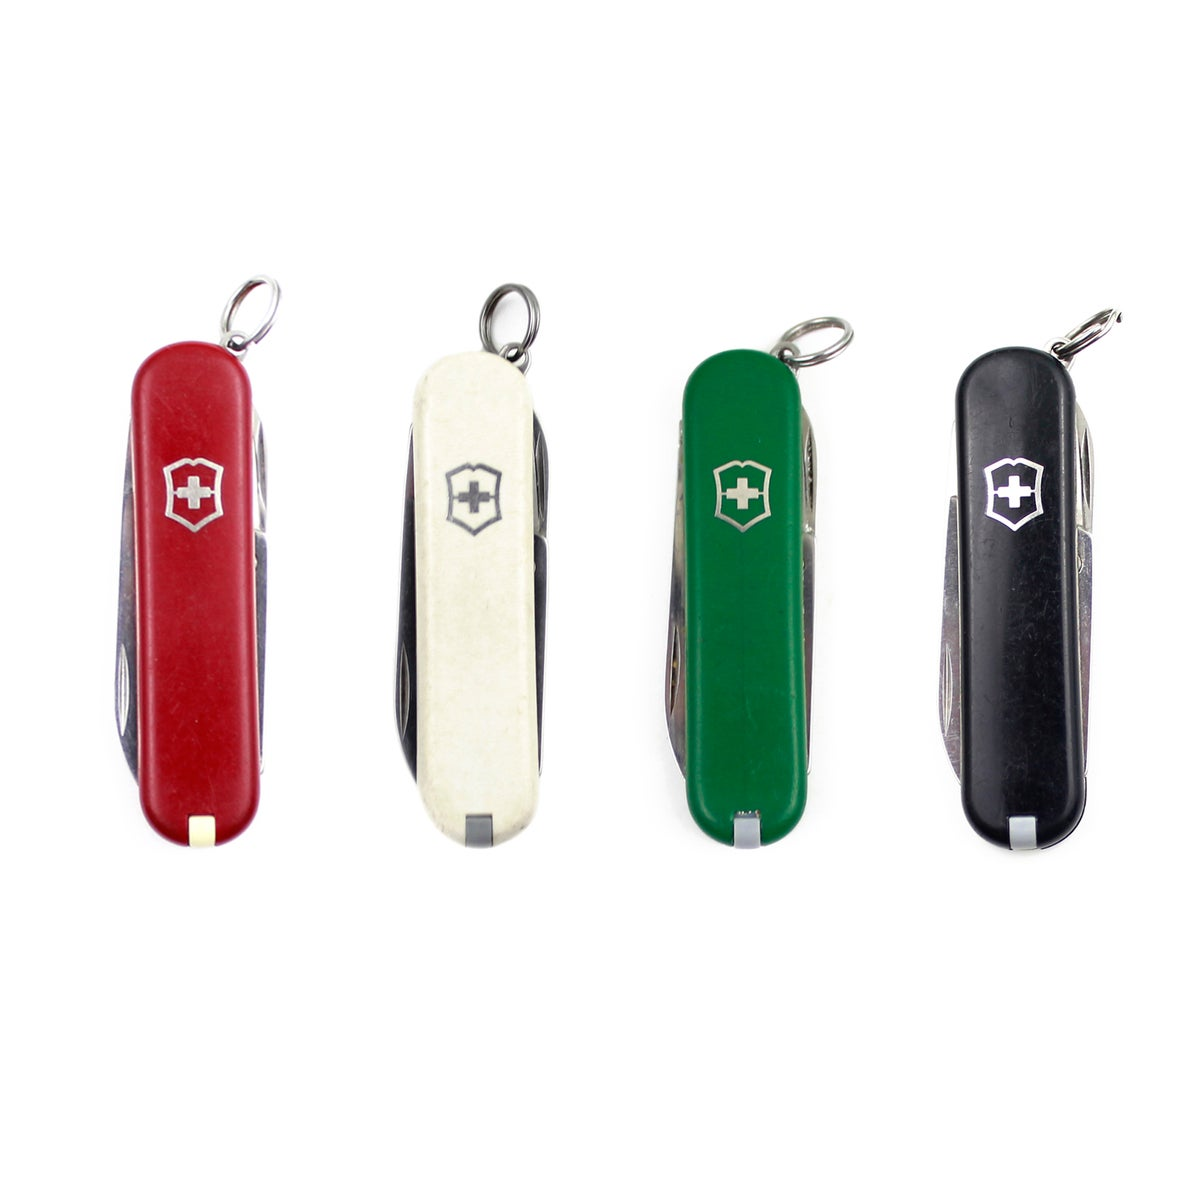 Image of Victorinox Swiss Army Pocket Knife